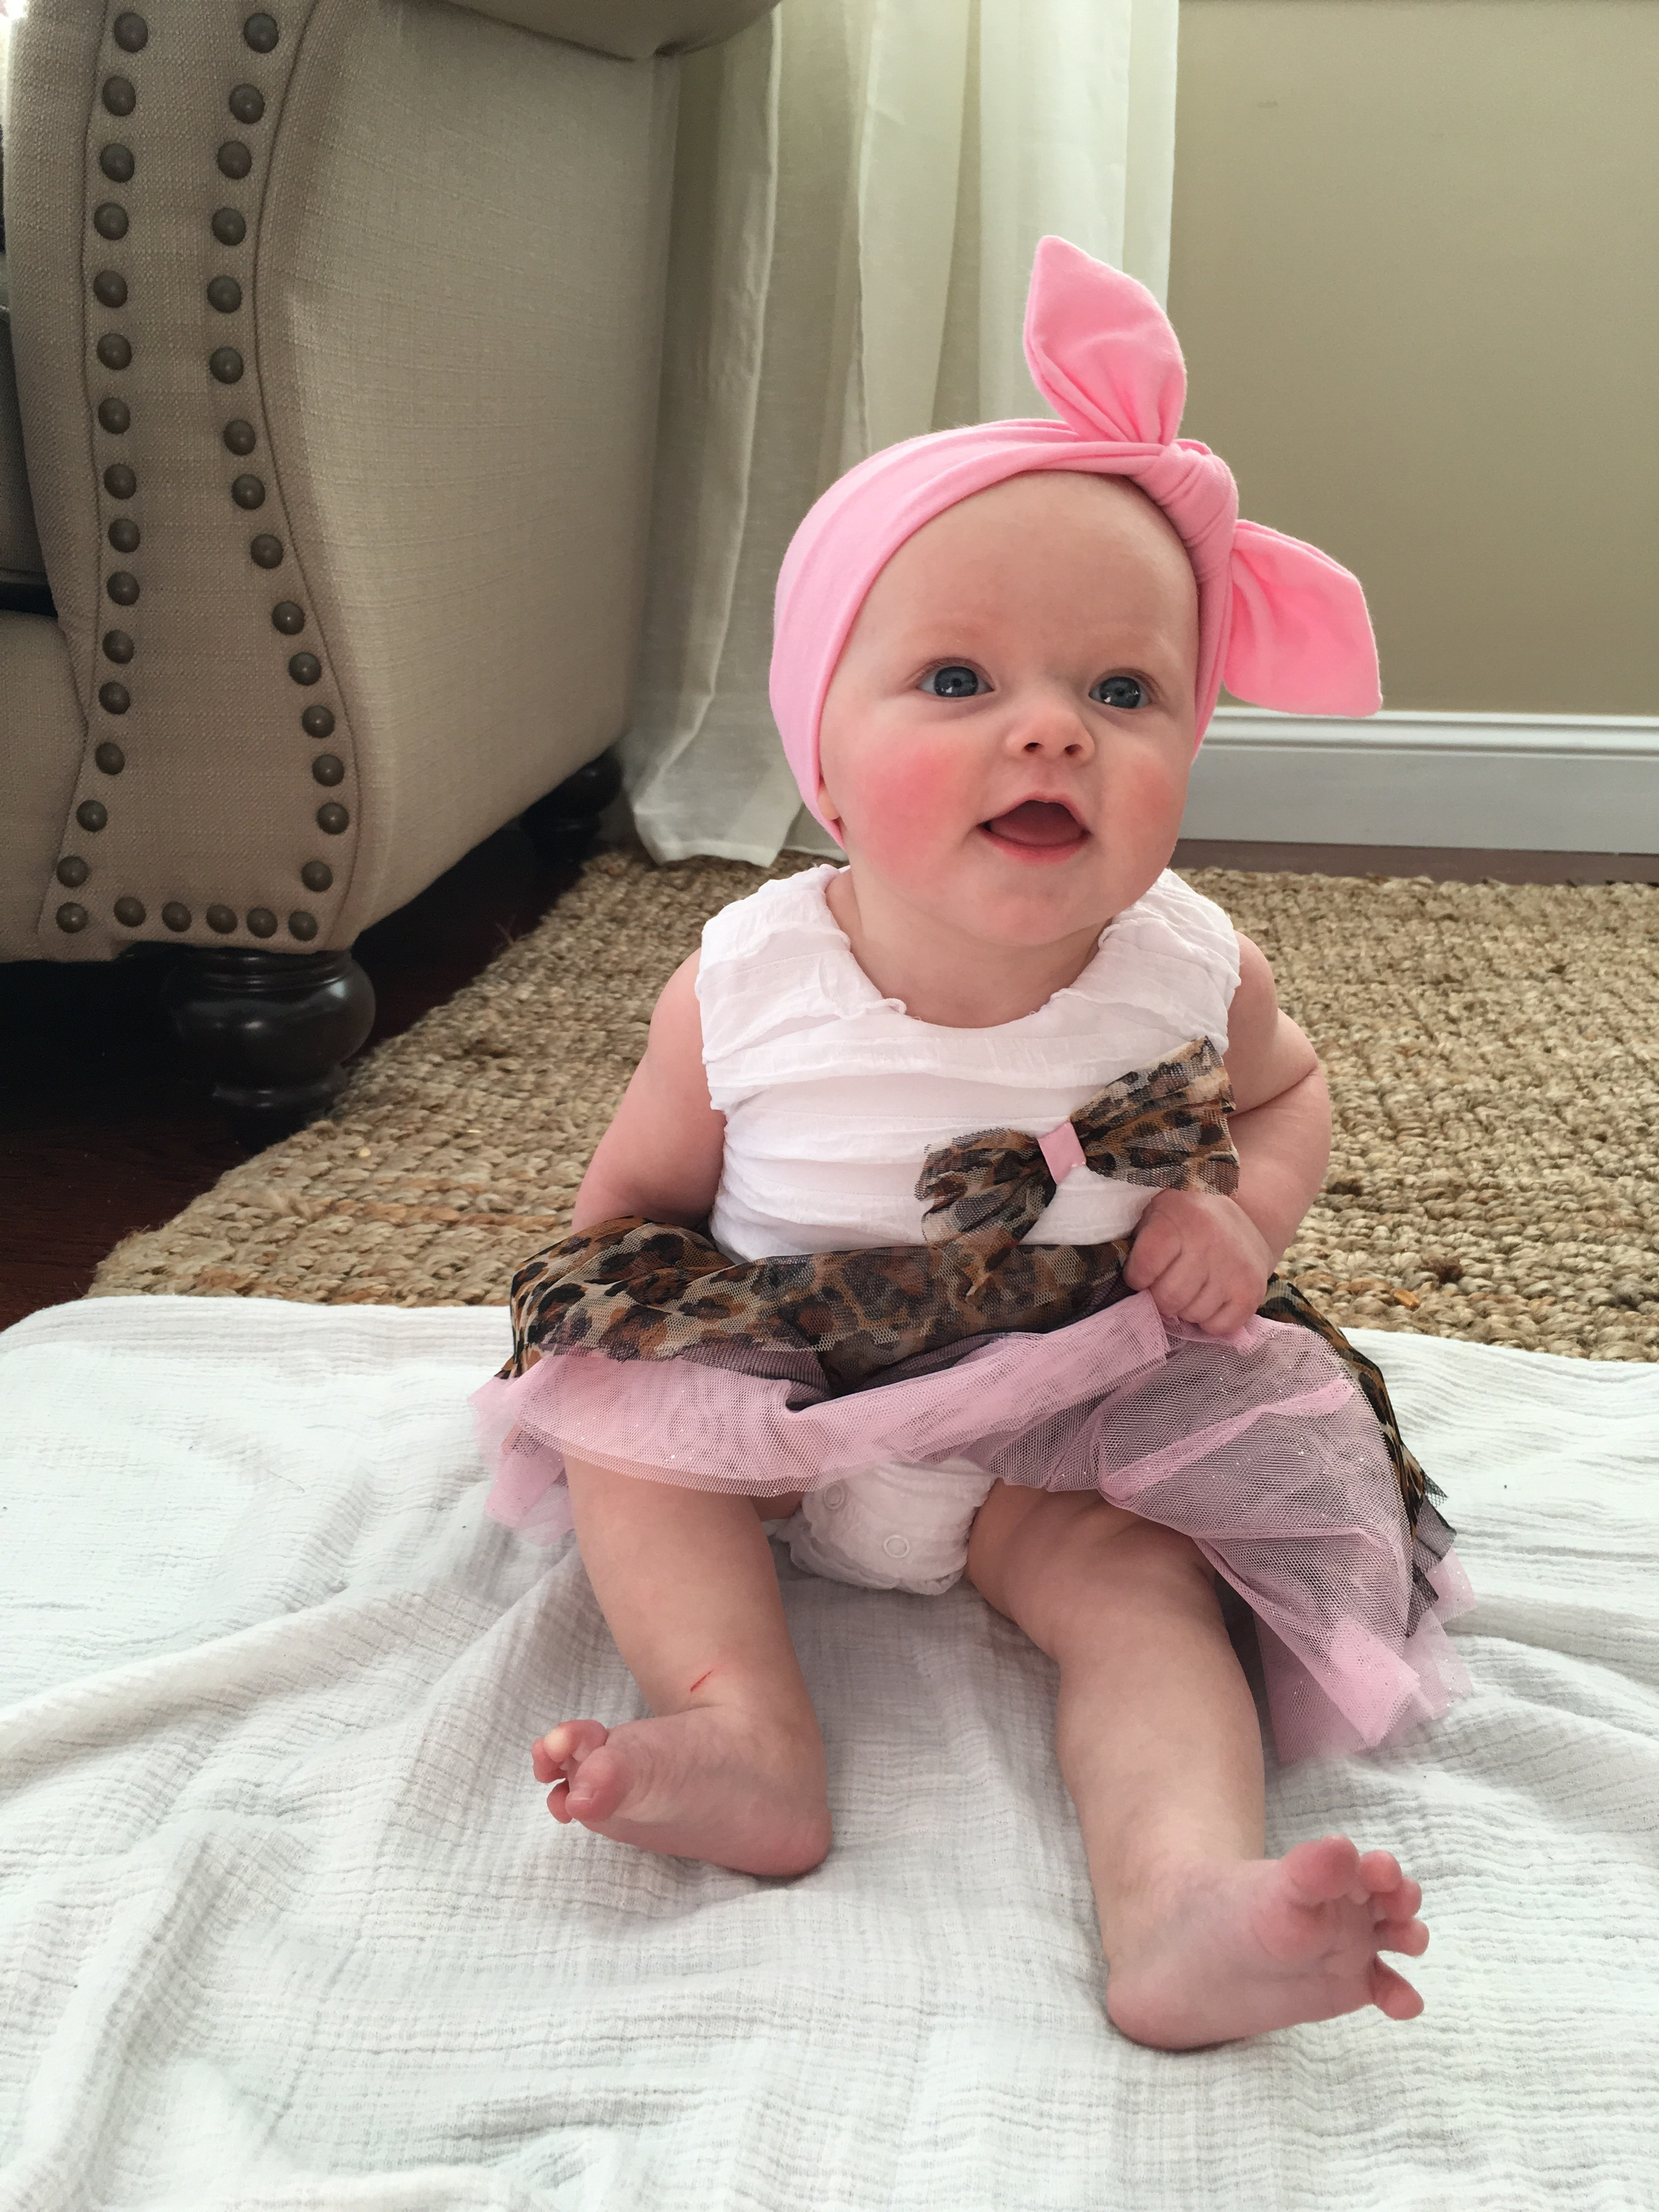 Baby Fashion. Infant swimsuit. The Winemakers Wife. Mother. Lifestyle blogger.